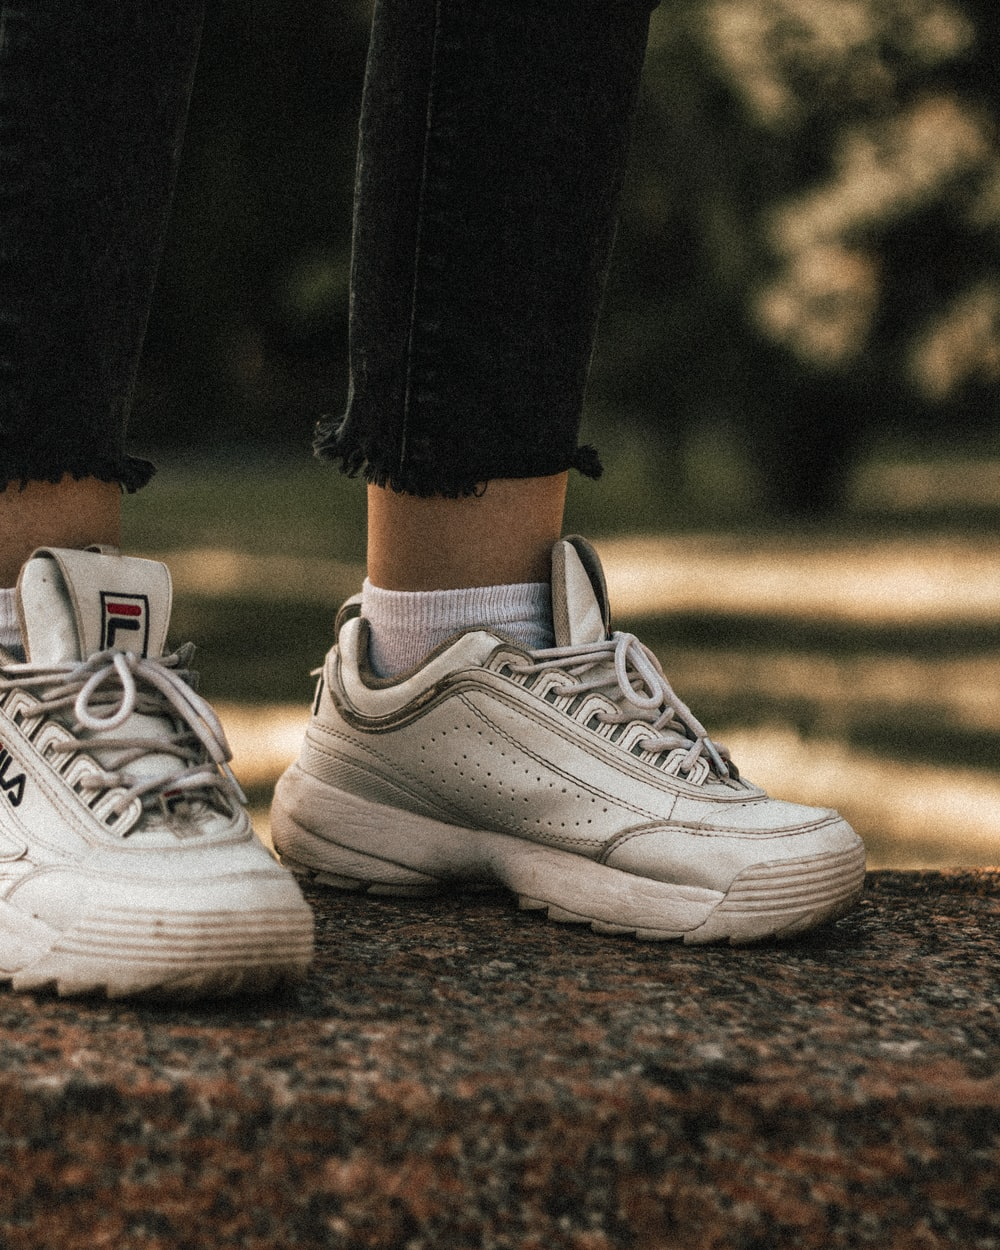 person wearing white Fila low-top sneakers